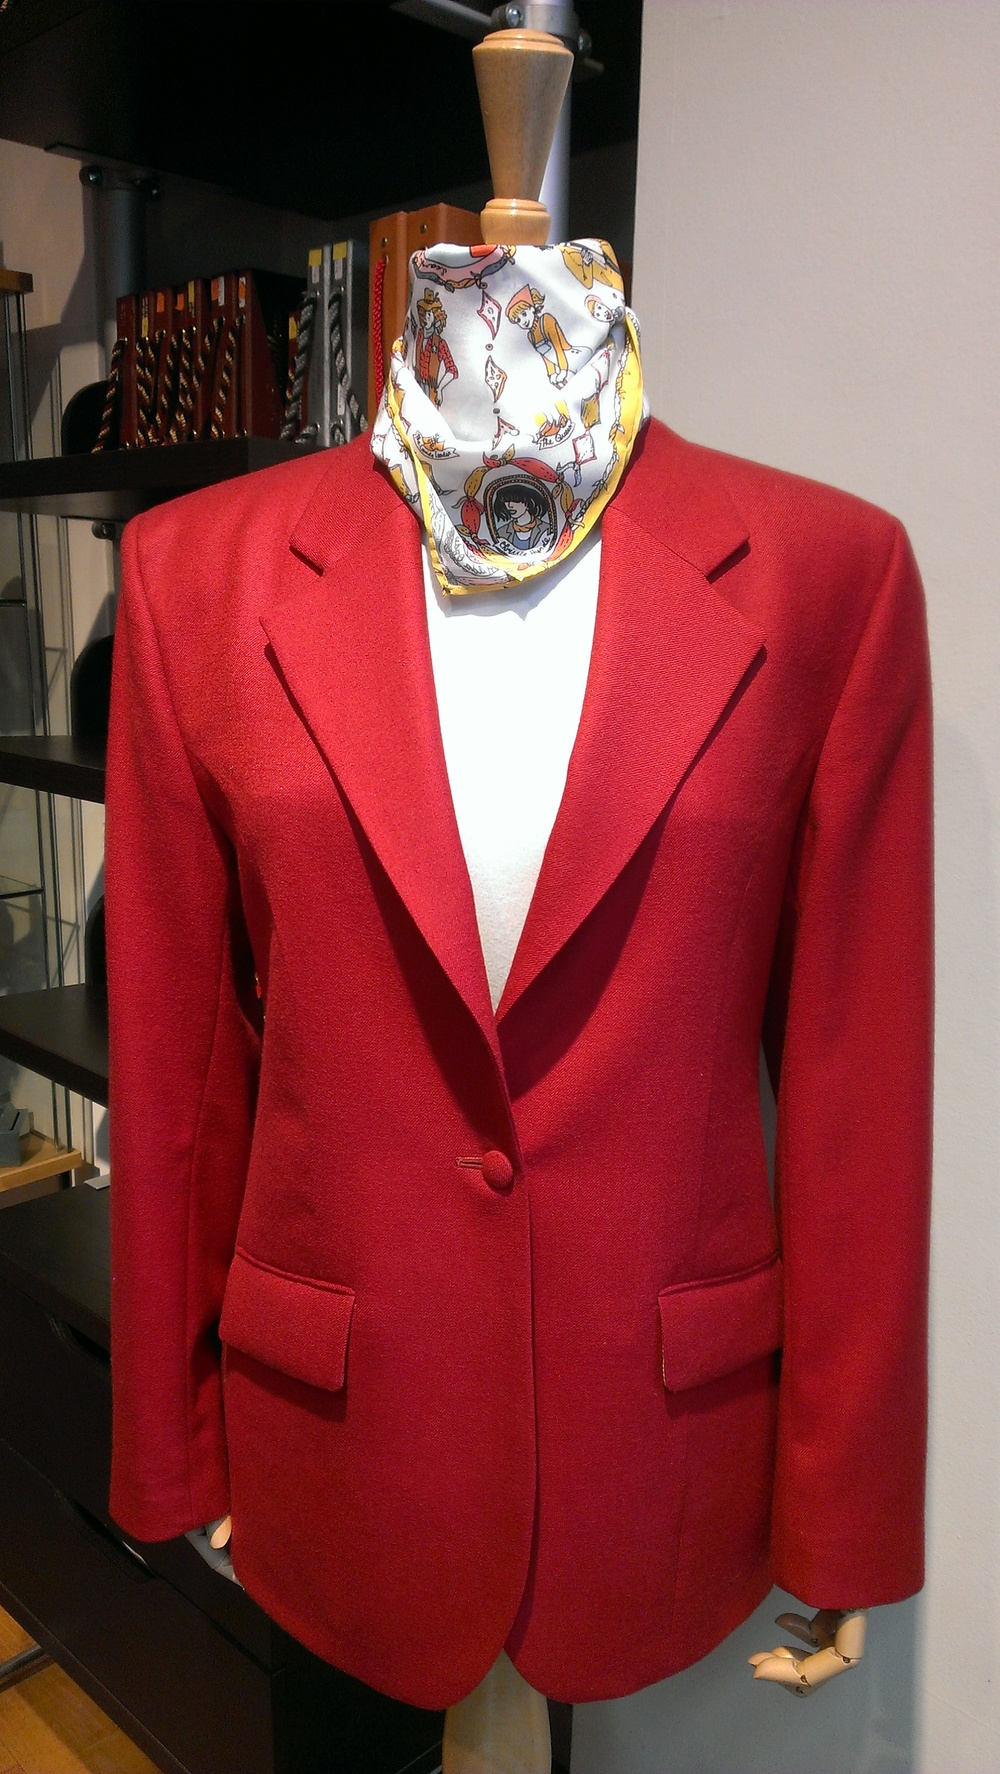 red-wool-ladies-jacket-single-breasted-one-button-bespoke-all-uk-made.jpg